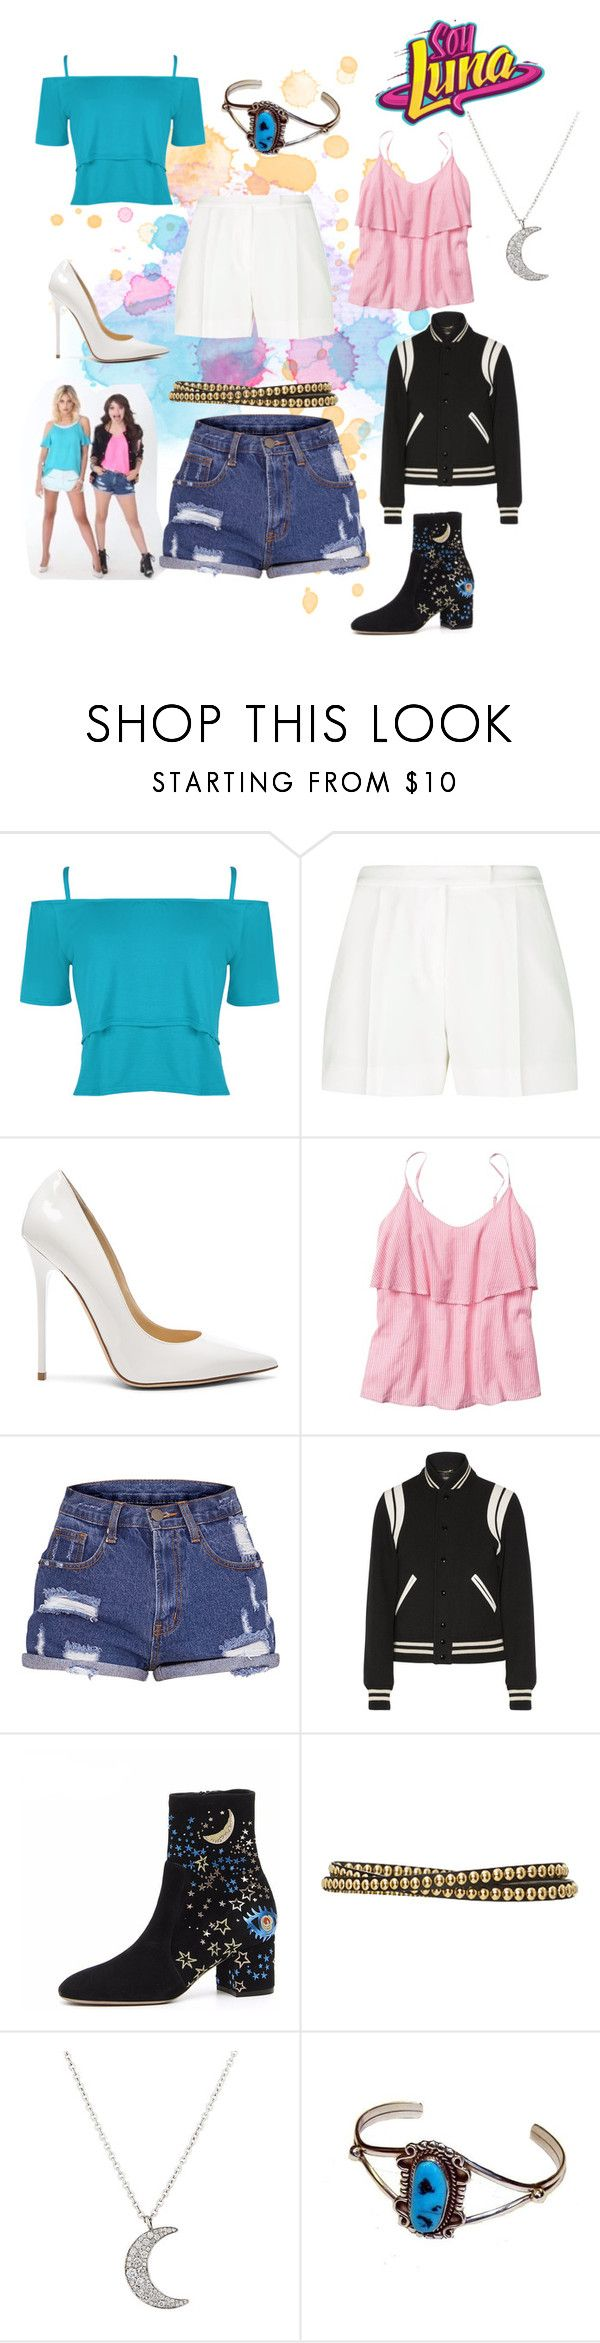 """soy  luna"" by maria-cmxiv on Polyvore featuring WearAll, Elie Saab, Jimmy Choo, Gap, Yves Saint Laurent, Burberry and Finn"